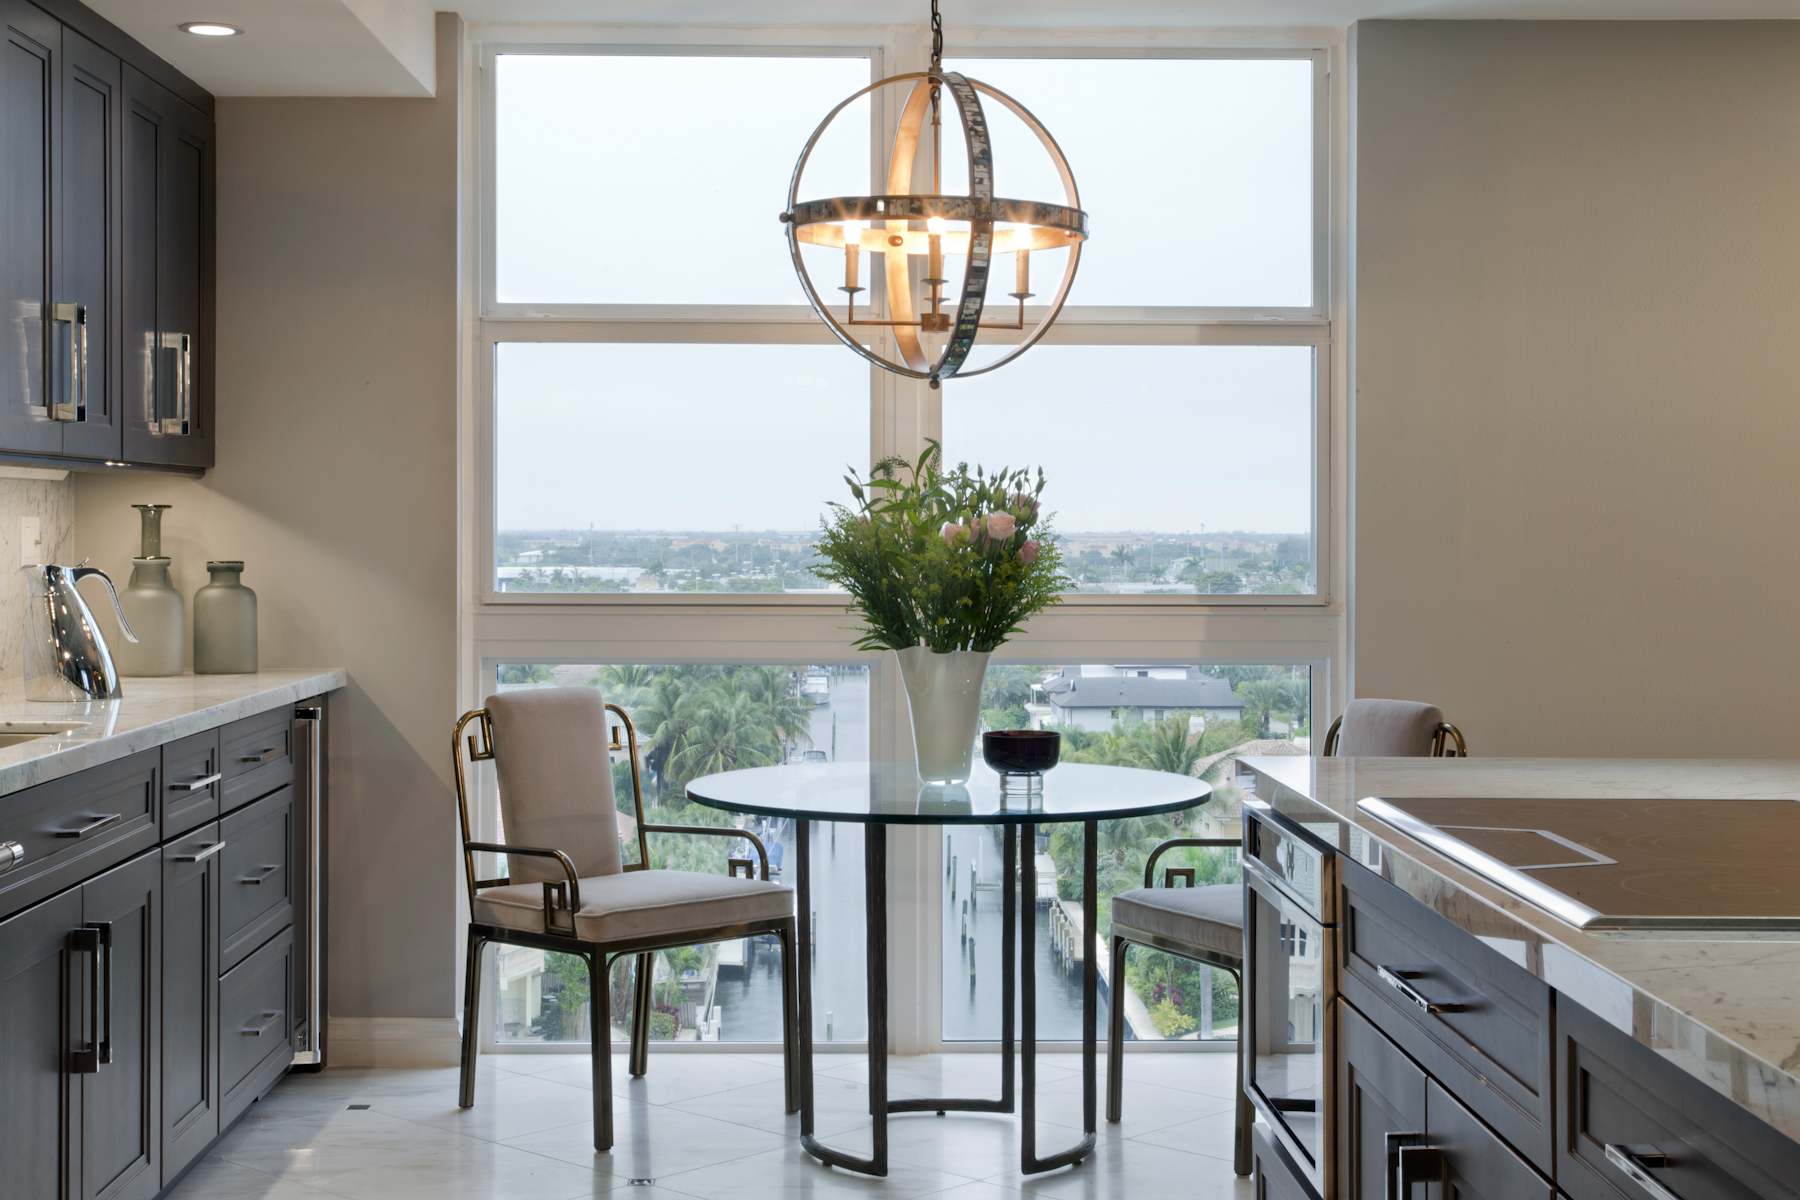 An eyecatching chandelier or pendant fixture is the statement piece to bring drama and glamour to your dining experience... Design Doreen Chambers Interiors